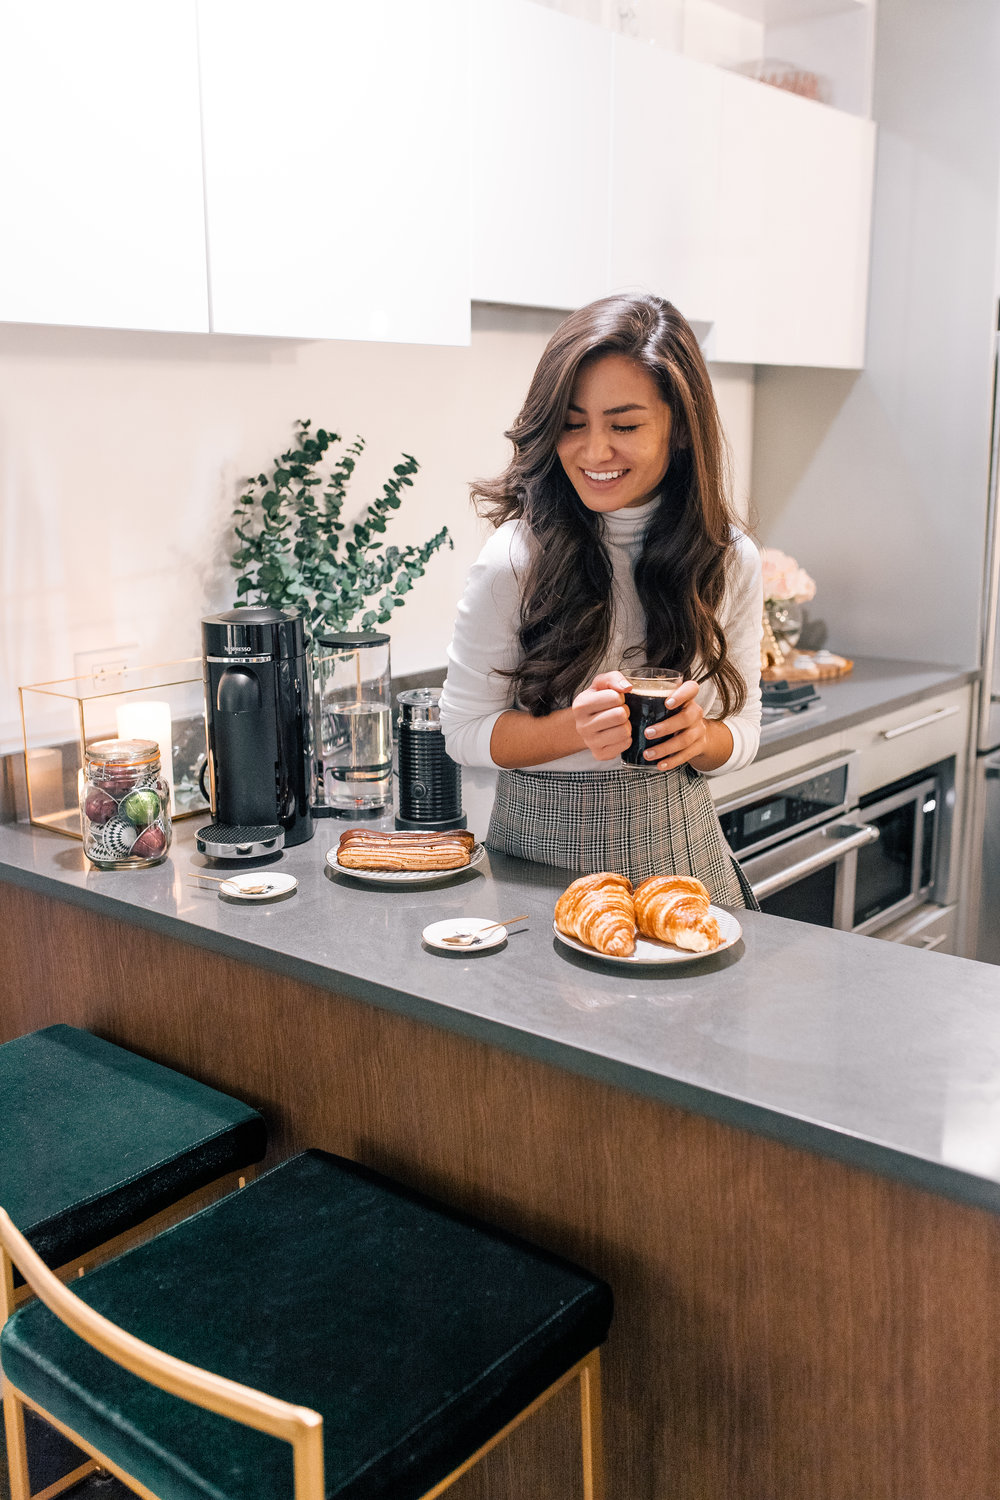 The Bachelor Caila Quinn and Sharleen Joynt enjoying Nespresso Coffee Machine a premium holiday gift in their New York City Kitchen